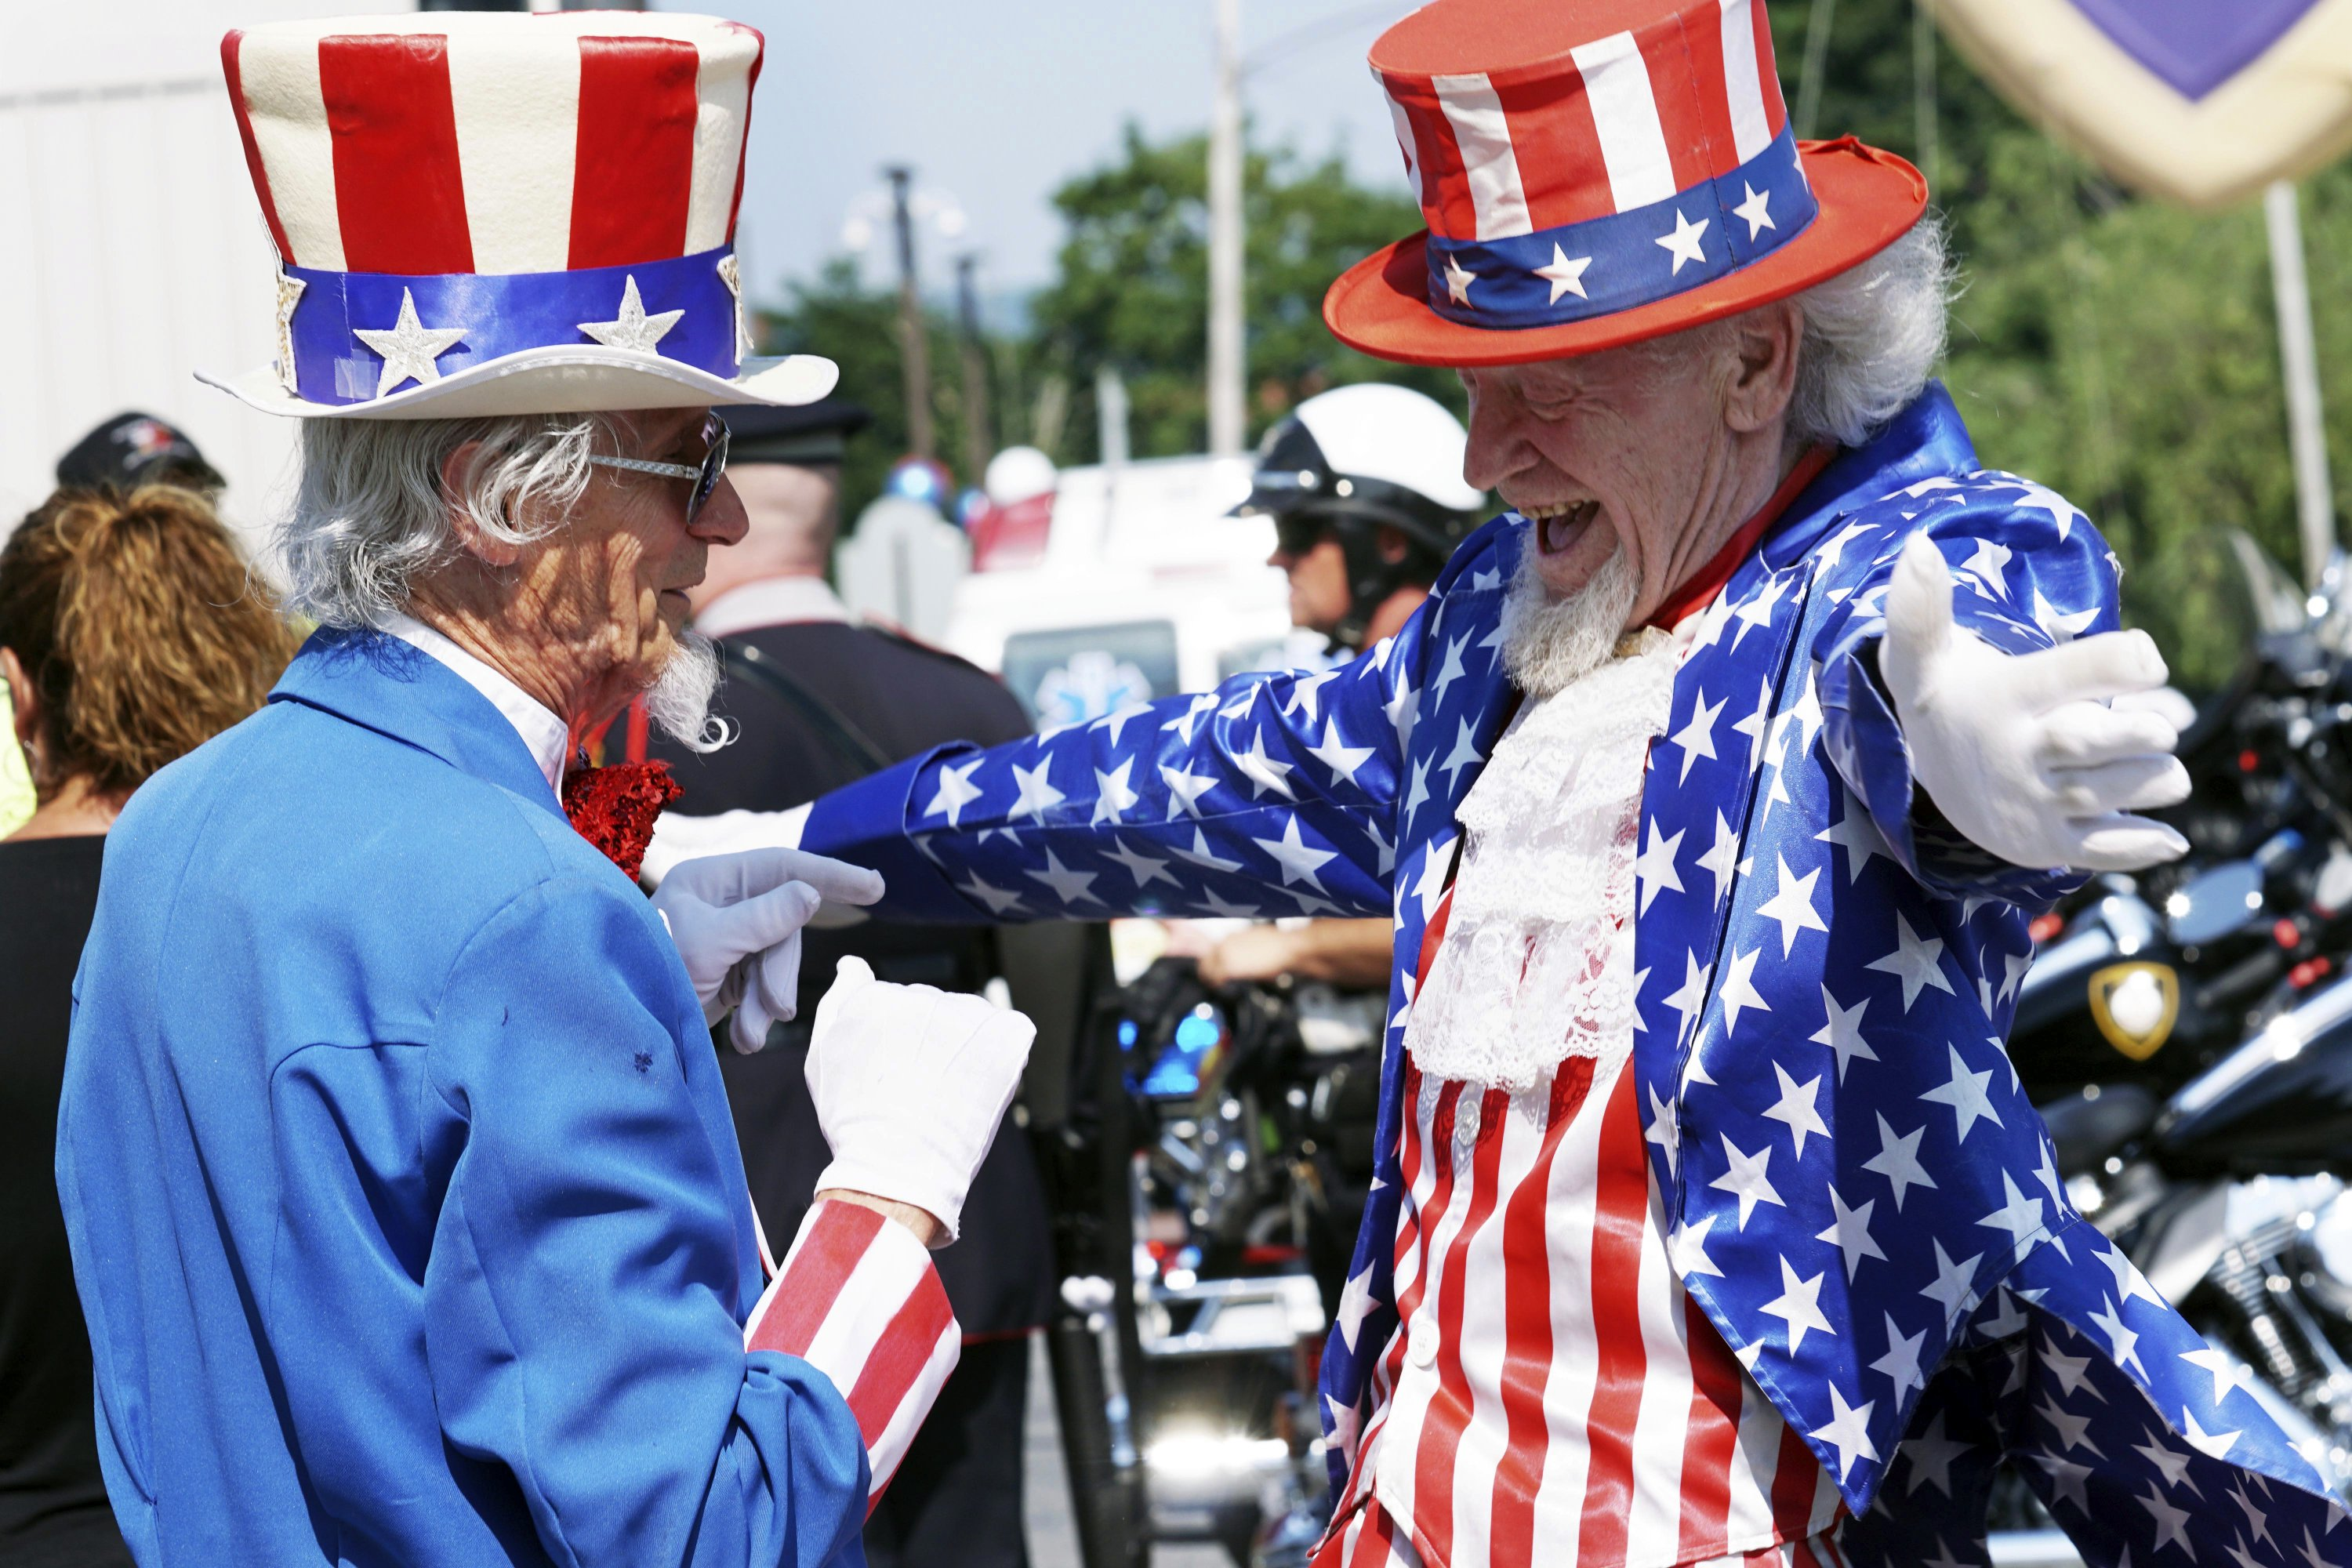 Concerts, fireworks and a military parade mark July Fourth